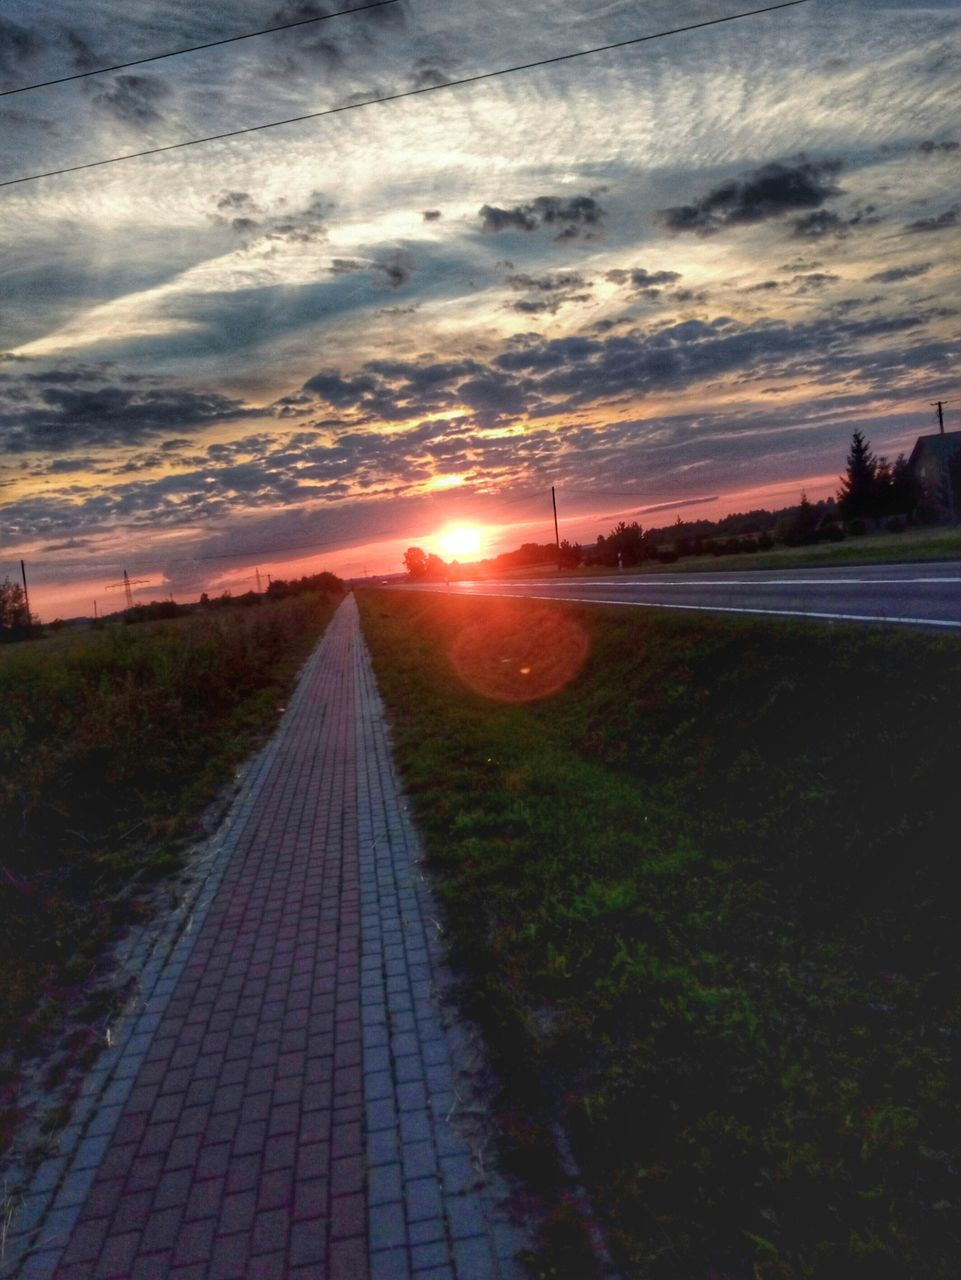 sunset, sun, sky, the way forward, lens flare, nature, scenics, landscape, outdoors, no people, tranquility, beauty in nature, sunlight, day